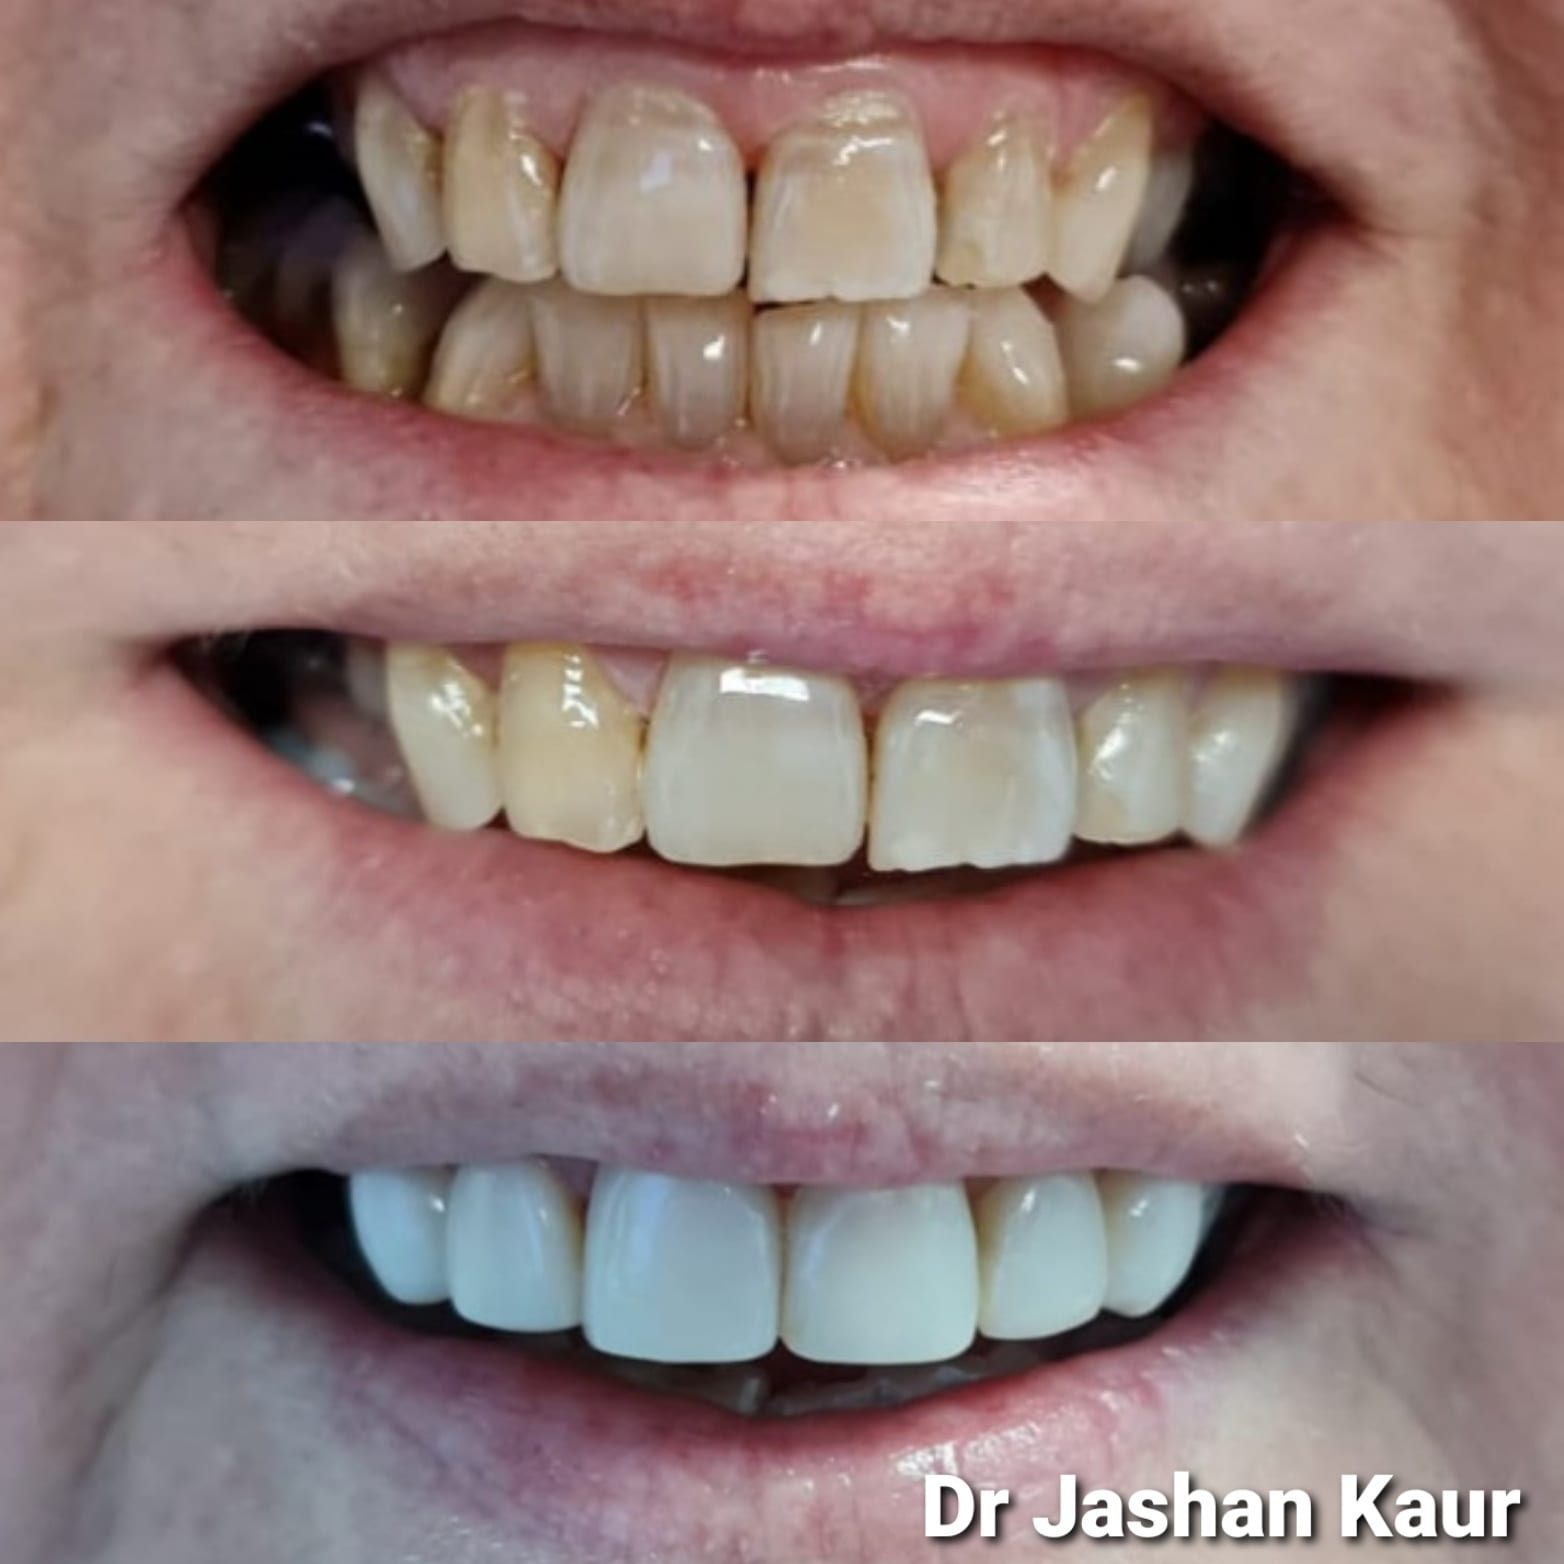 Campbelltown Family Dental Care composite venners x6 60year old female